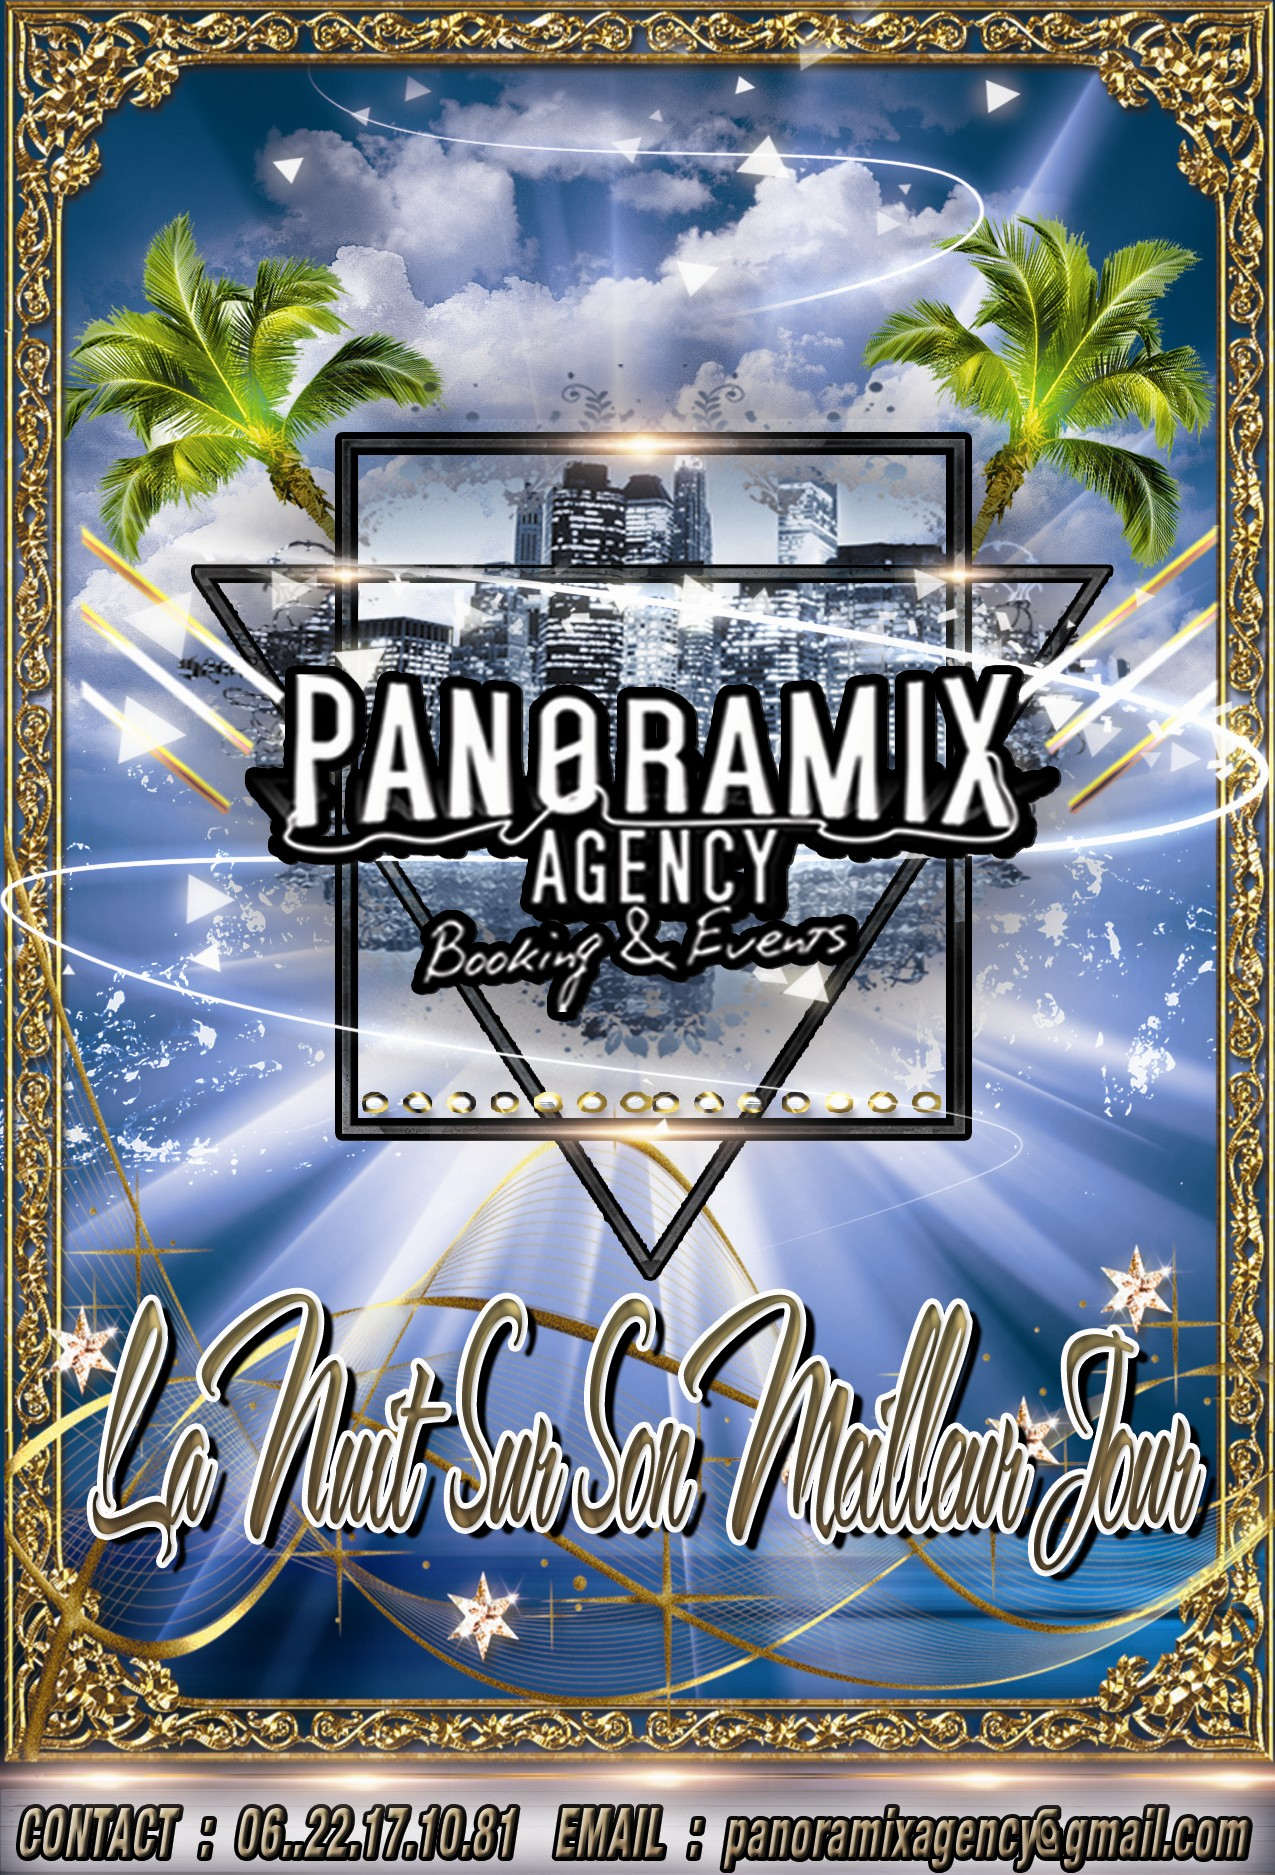 http://panoramix-radio-station.com/wp-content/uploads/2017/03/PANORAMIX-AGENCY-AFFICHE.jpg